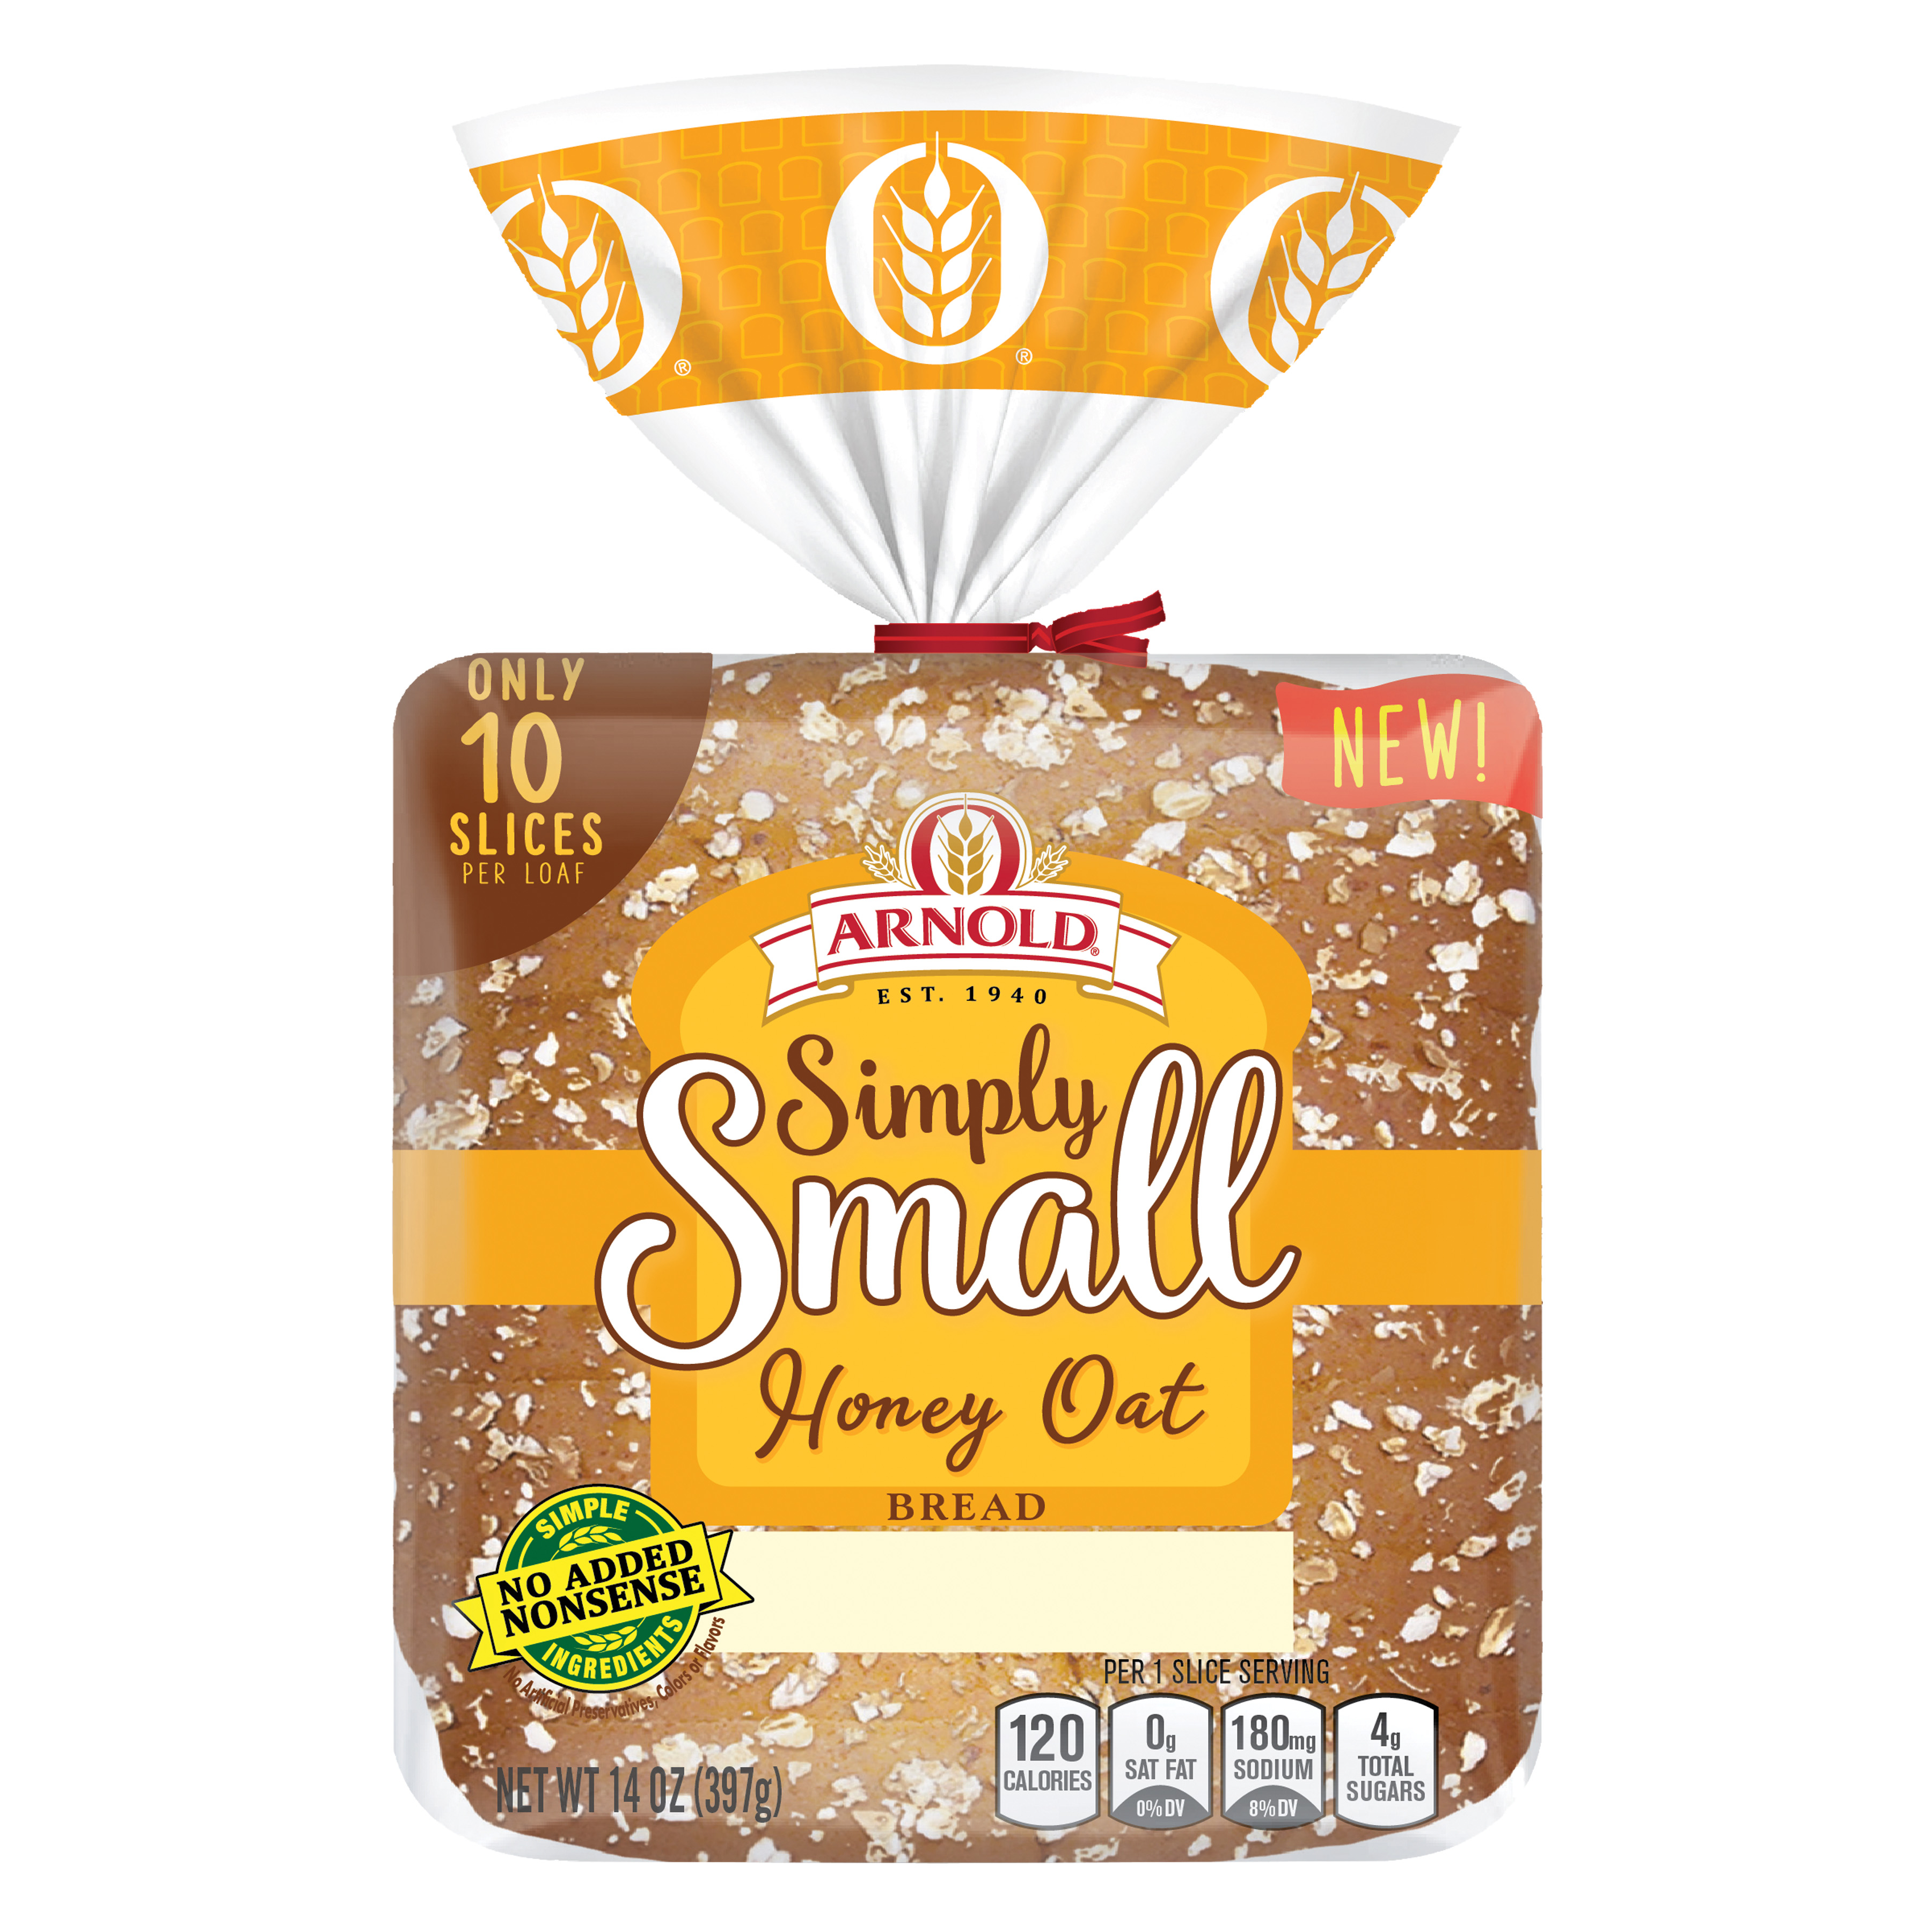 Arnold Simply Small Honey Wheat Bread Package Image